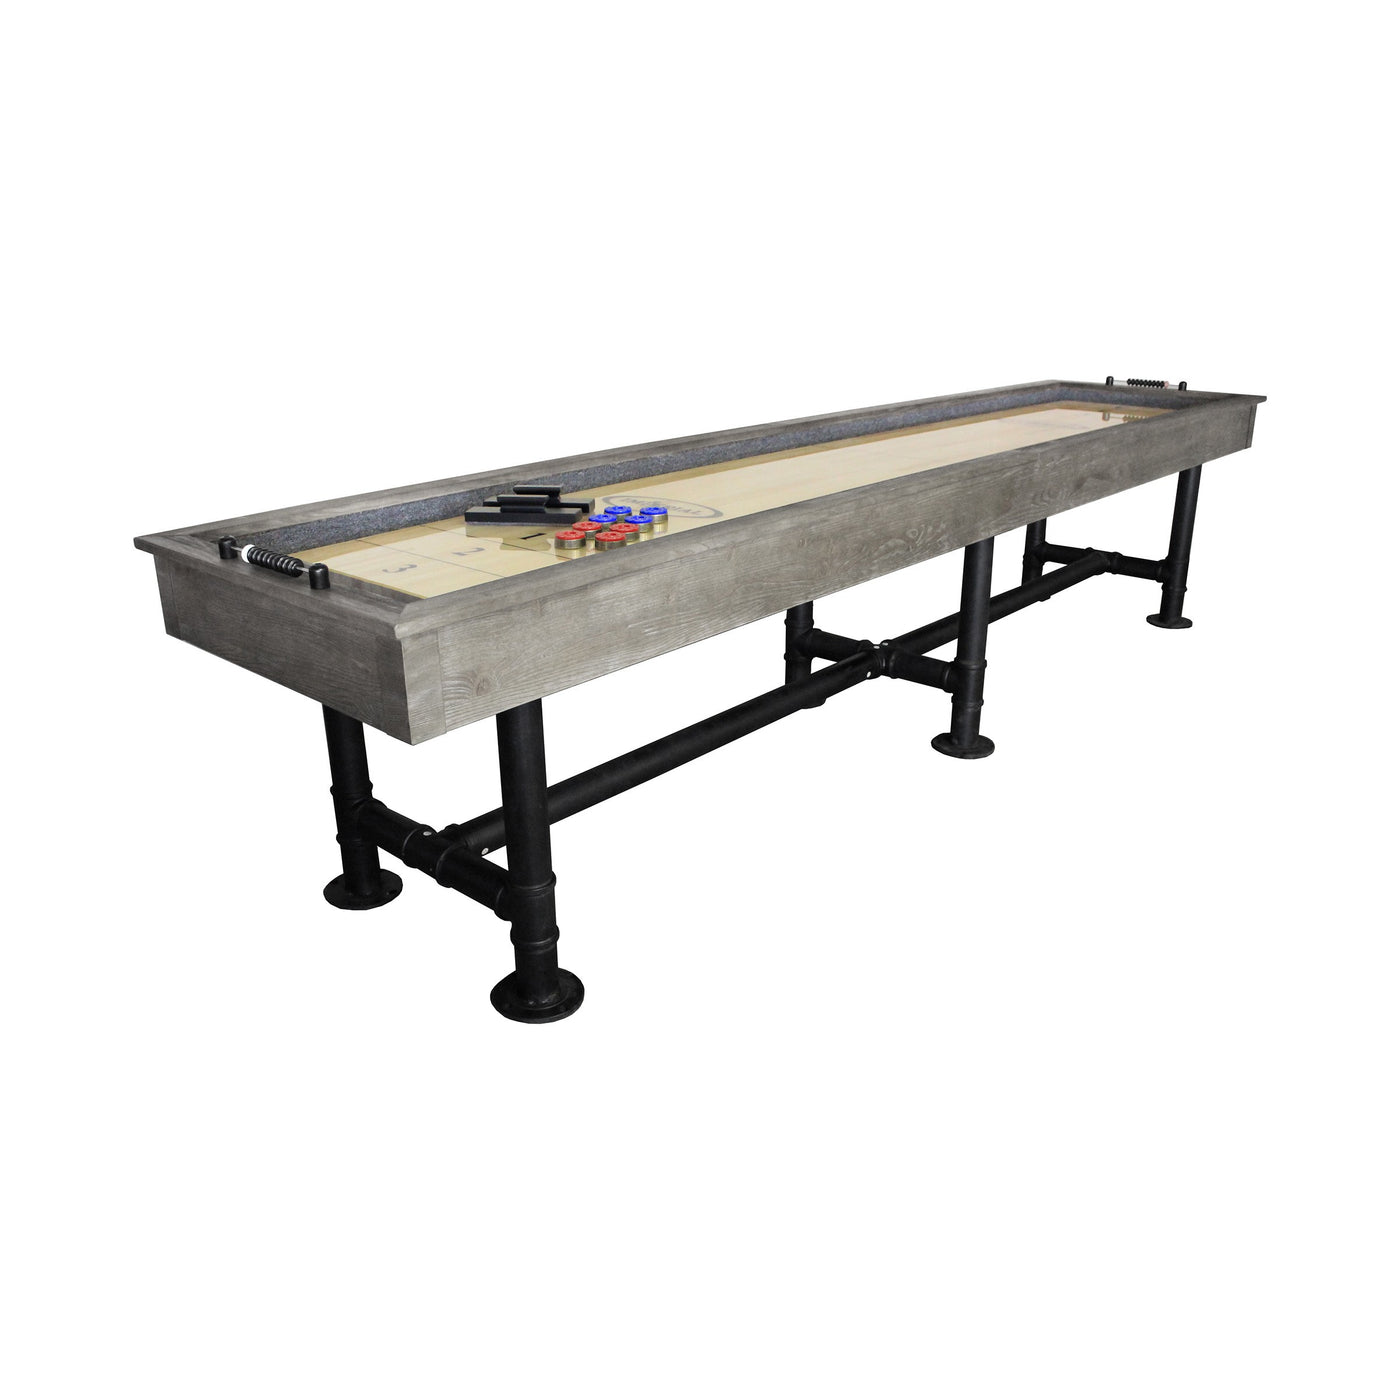 Bedford Ft Shuffleboard Table Fort Worth Billiards Superstore - 12 foot shuffleboard table for sale